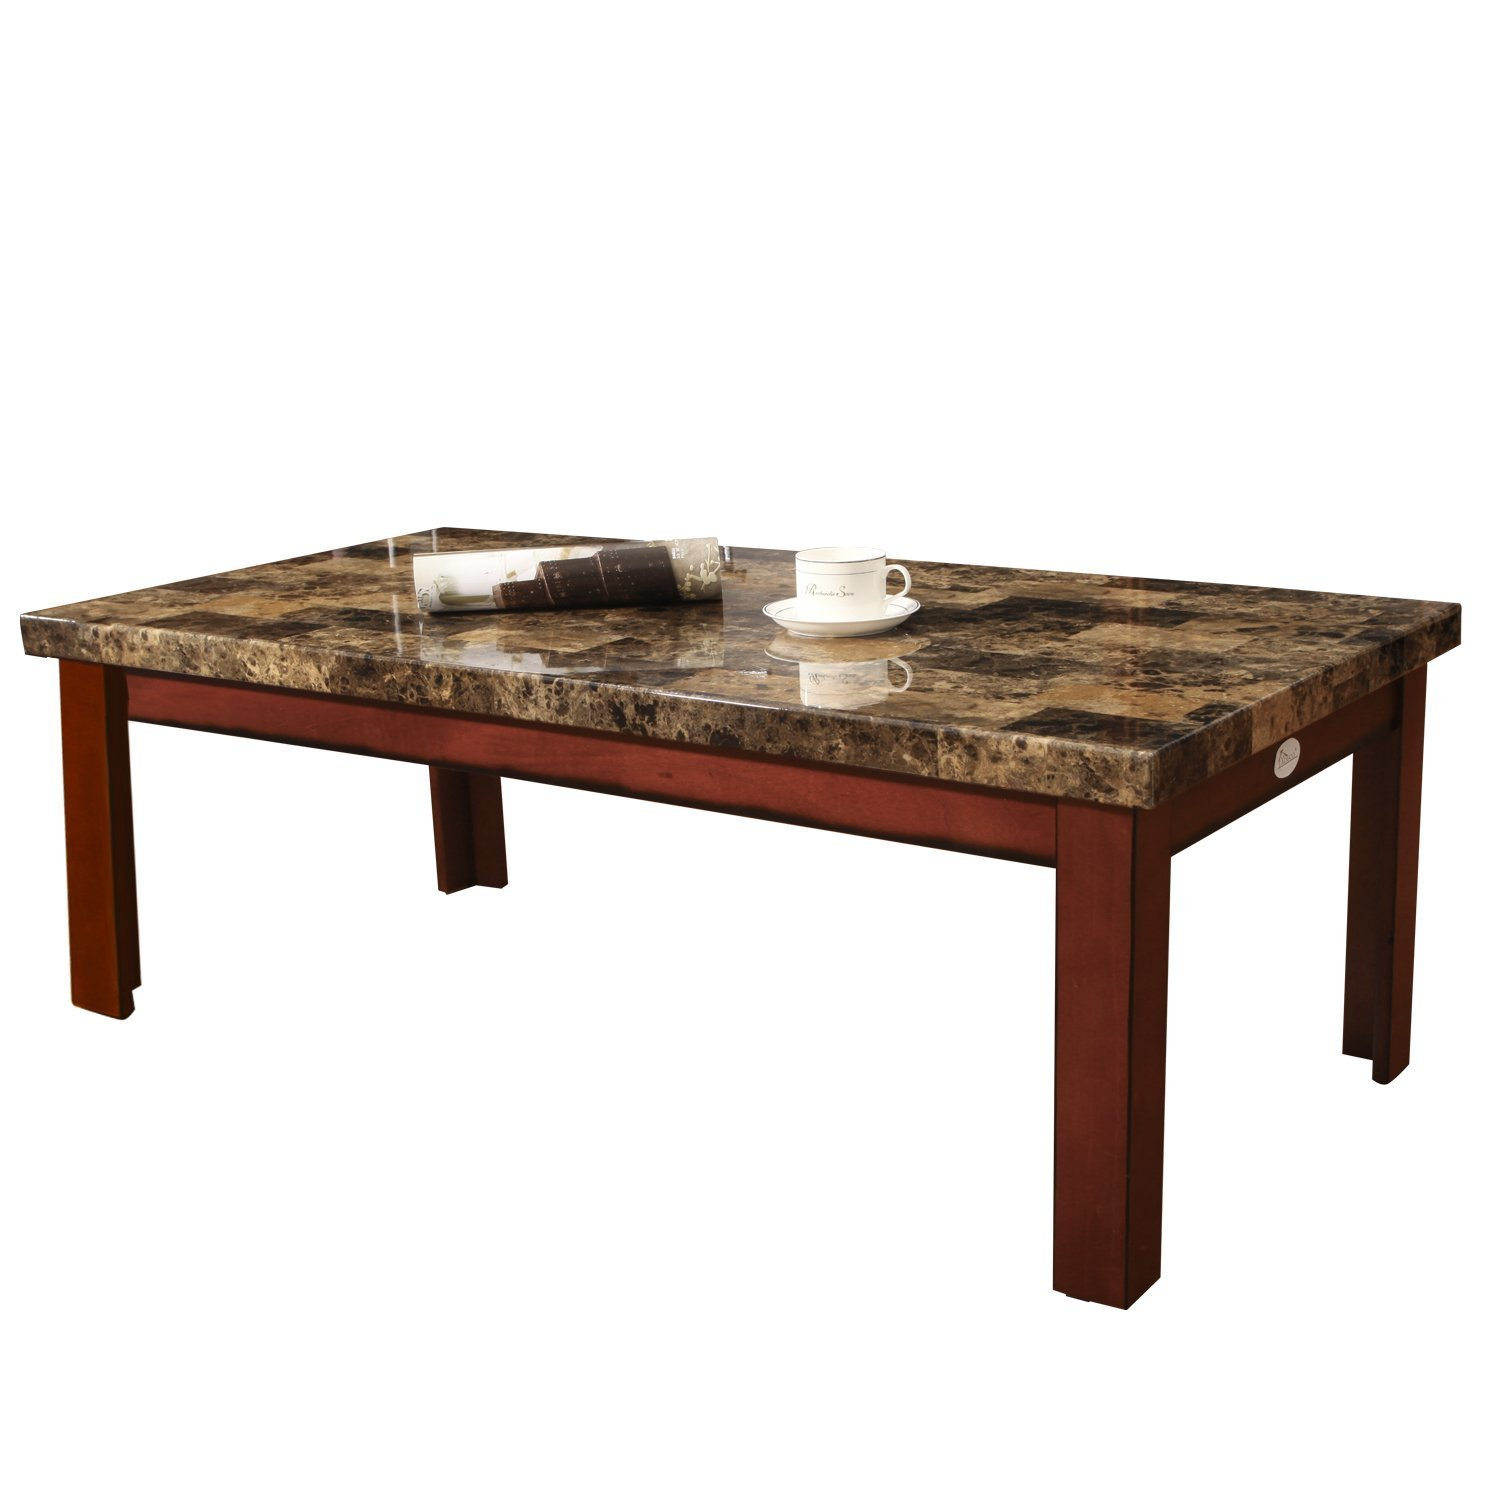 adeco walnut color wood faux marble finish rectangular coffee table 48x24 ebay. Black Bedroom Furniture Sets. Home Design Ideas